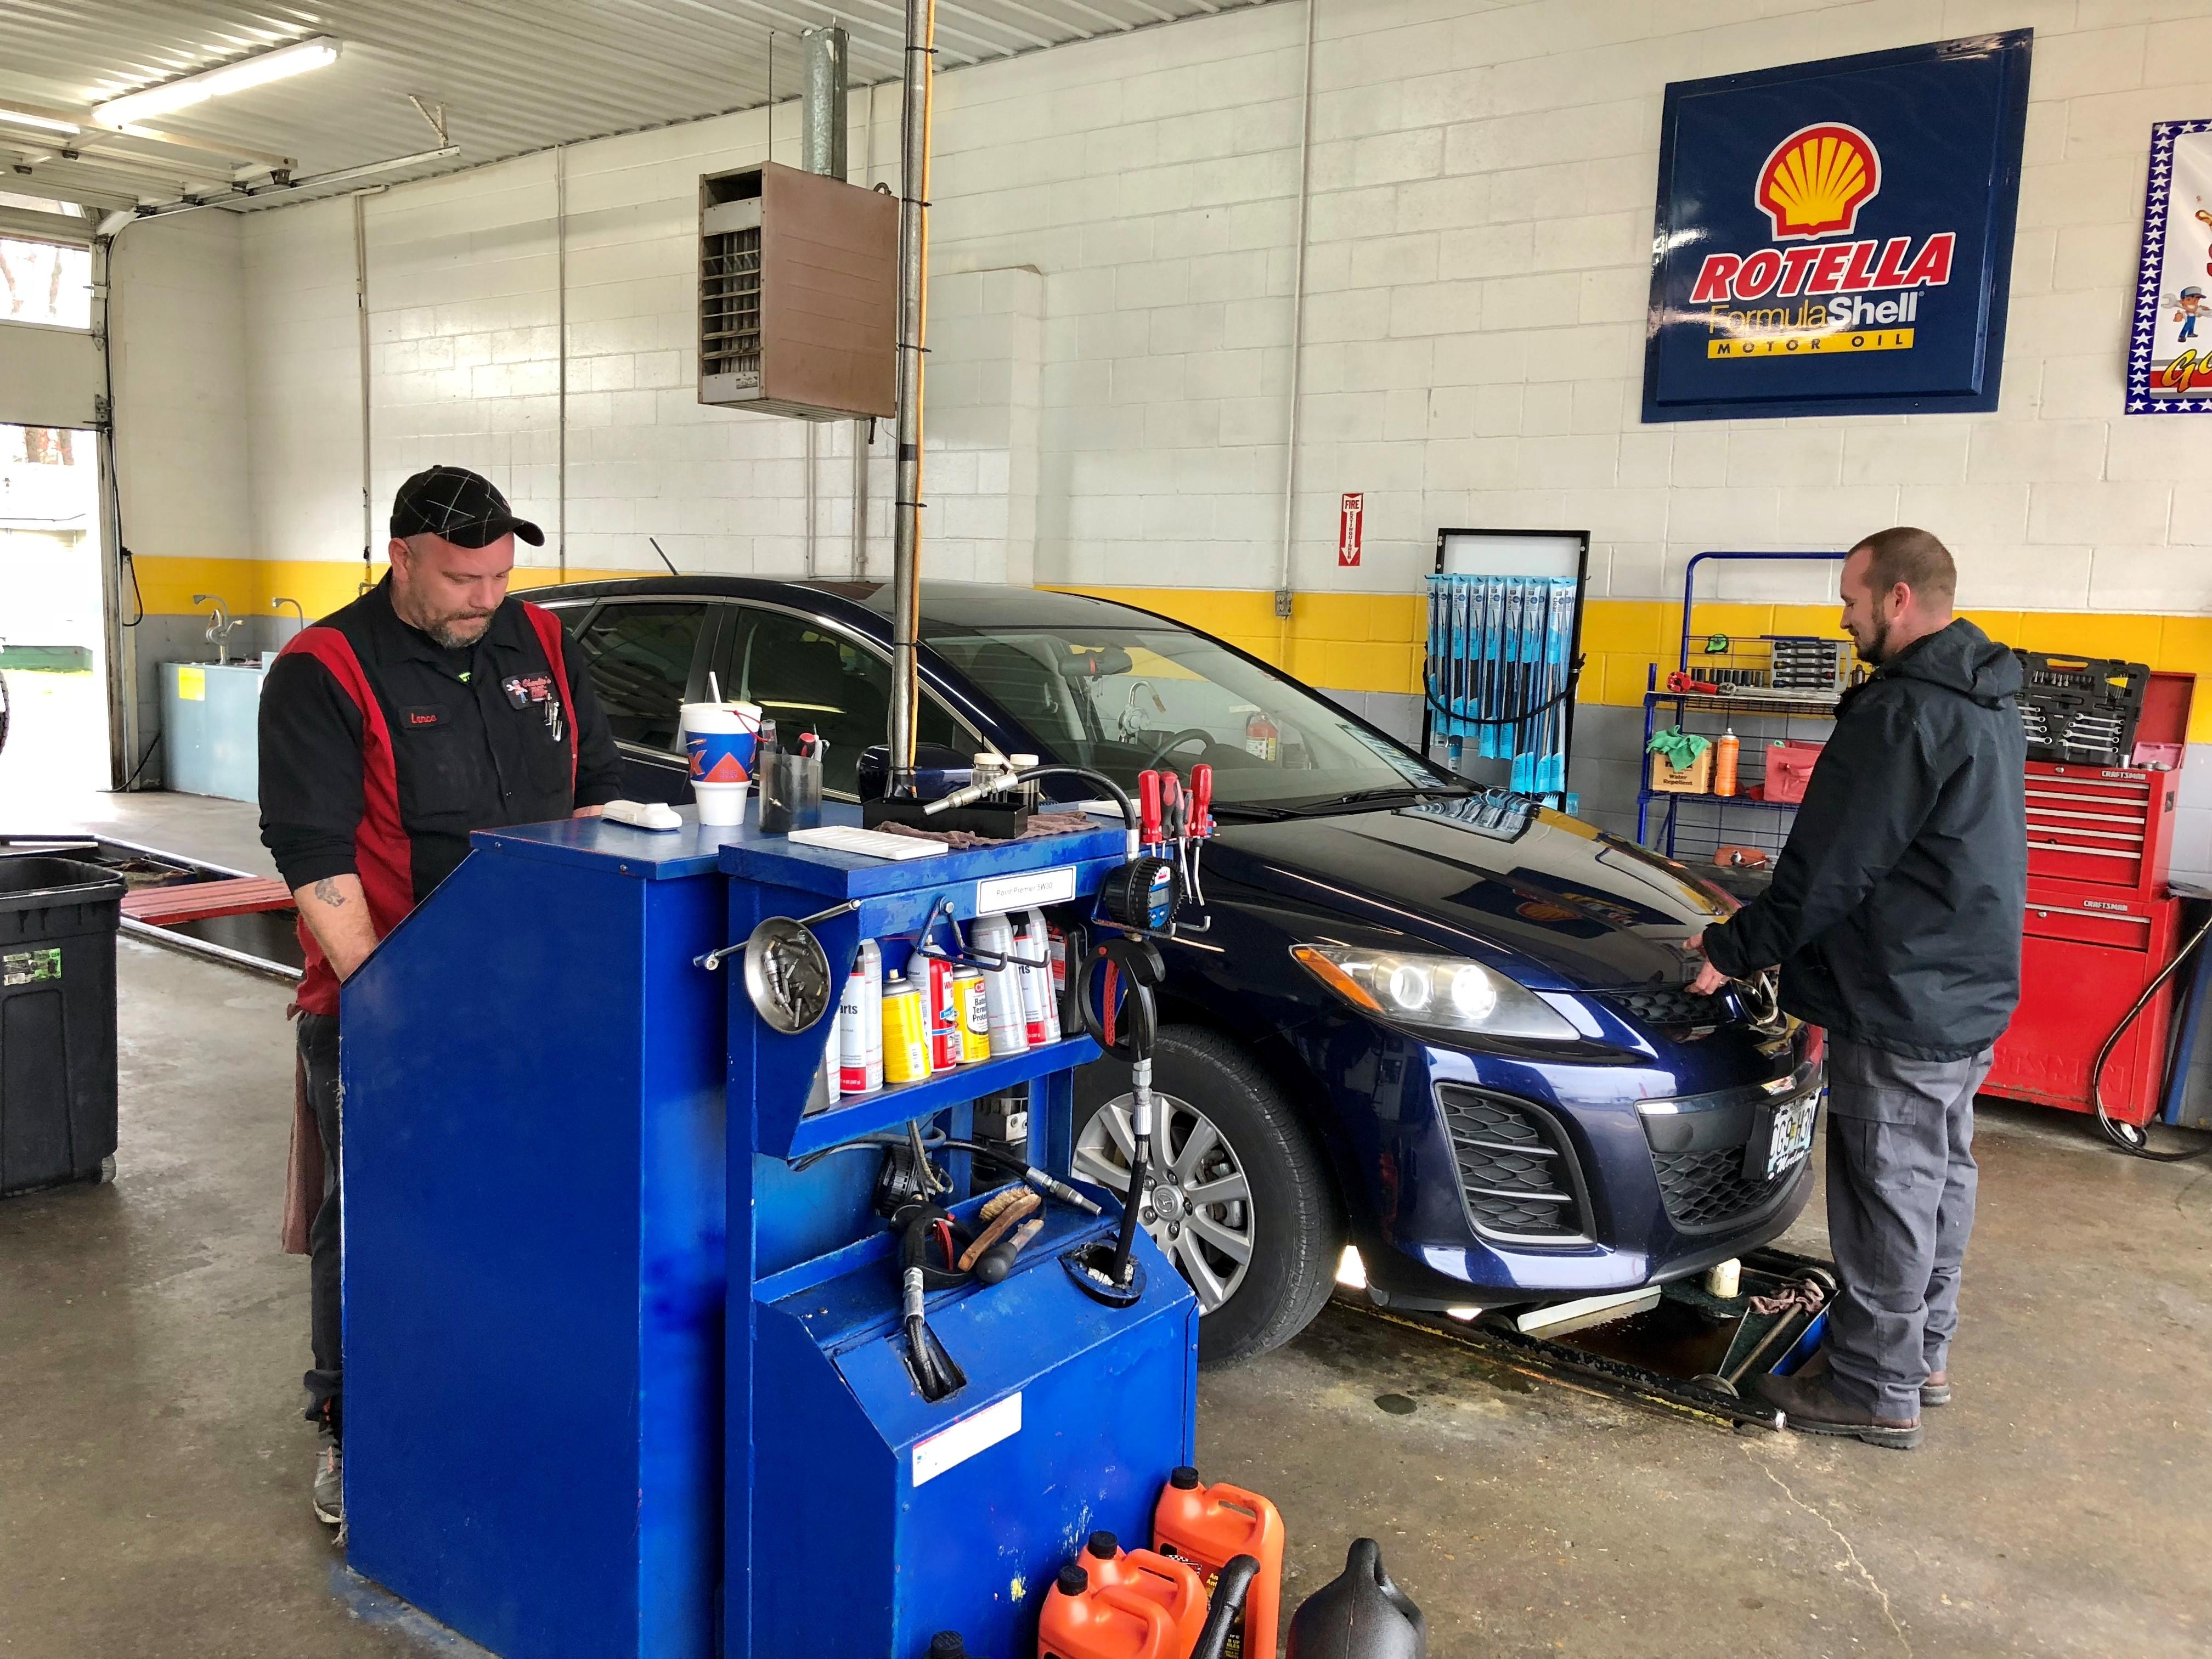 Charlie's Fast Lube Oil Change - Sikeston, MO image 1